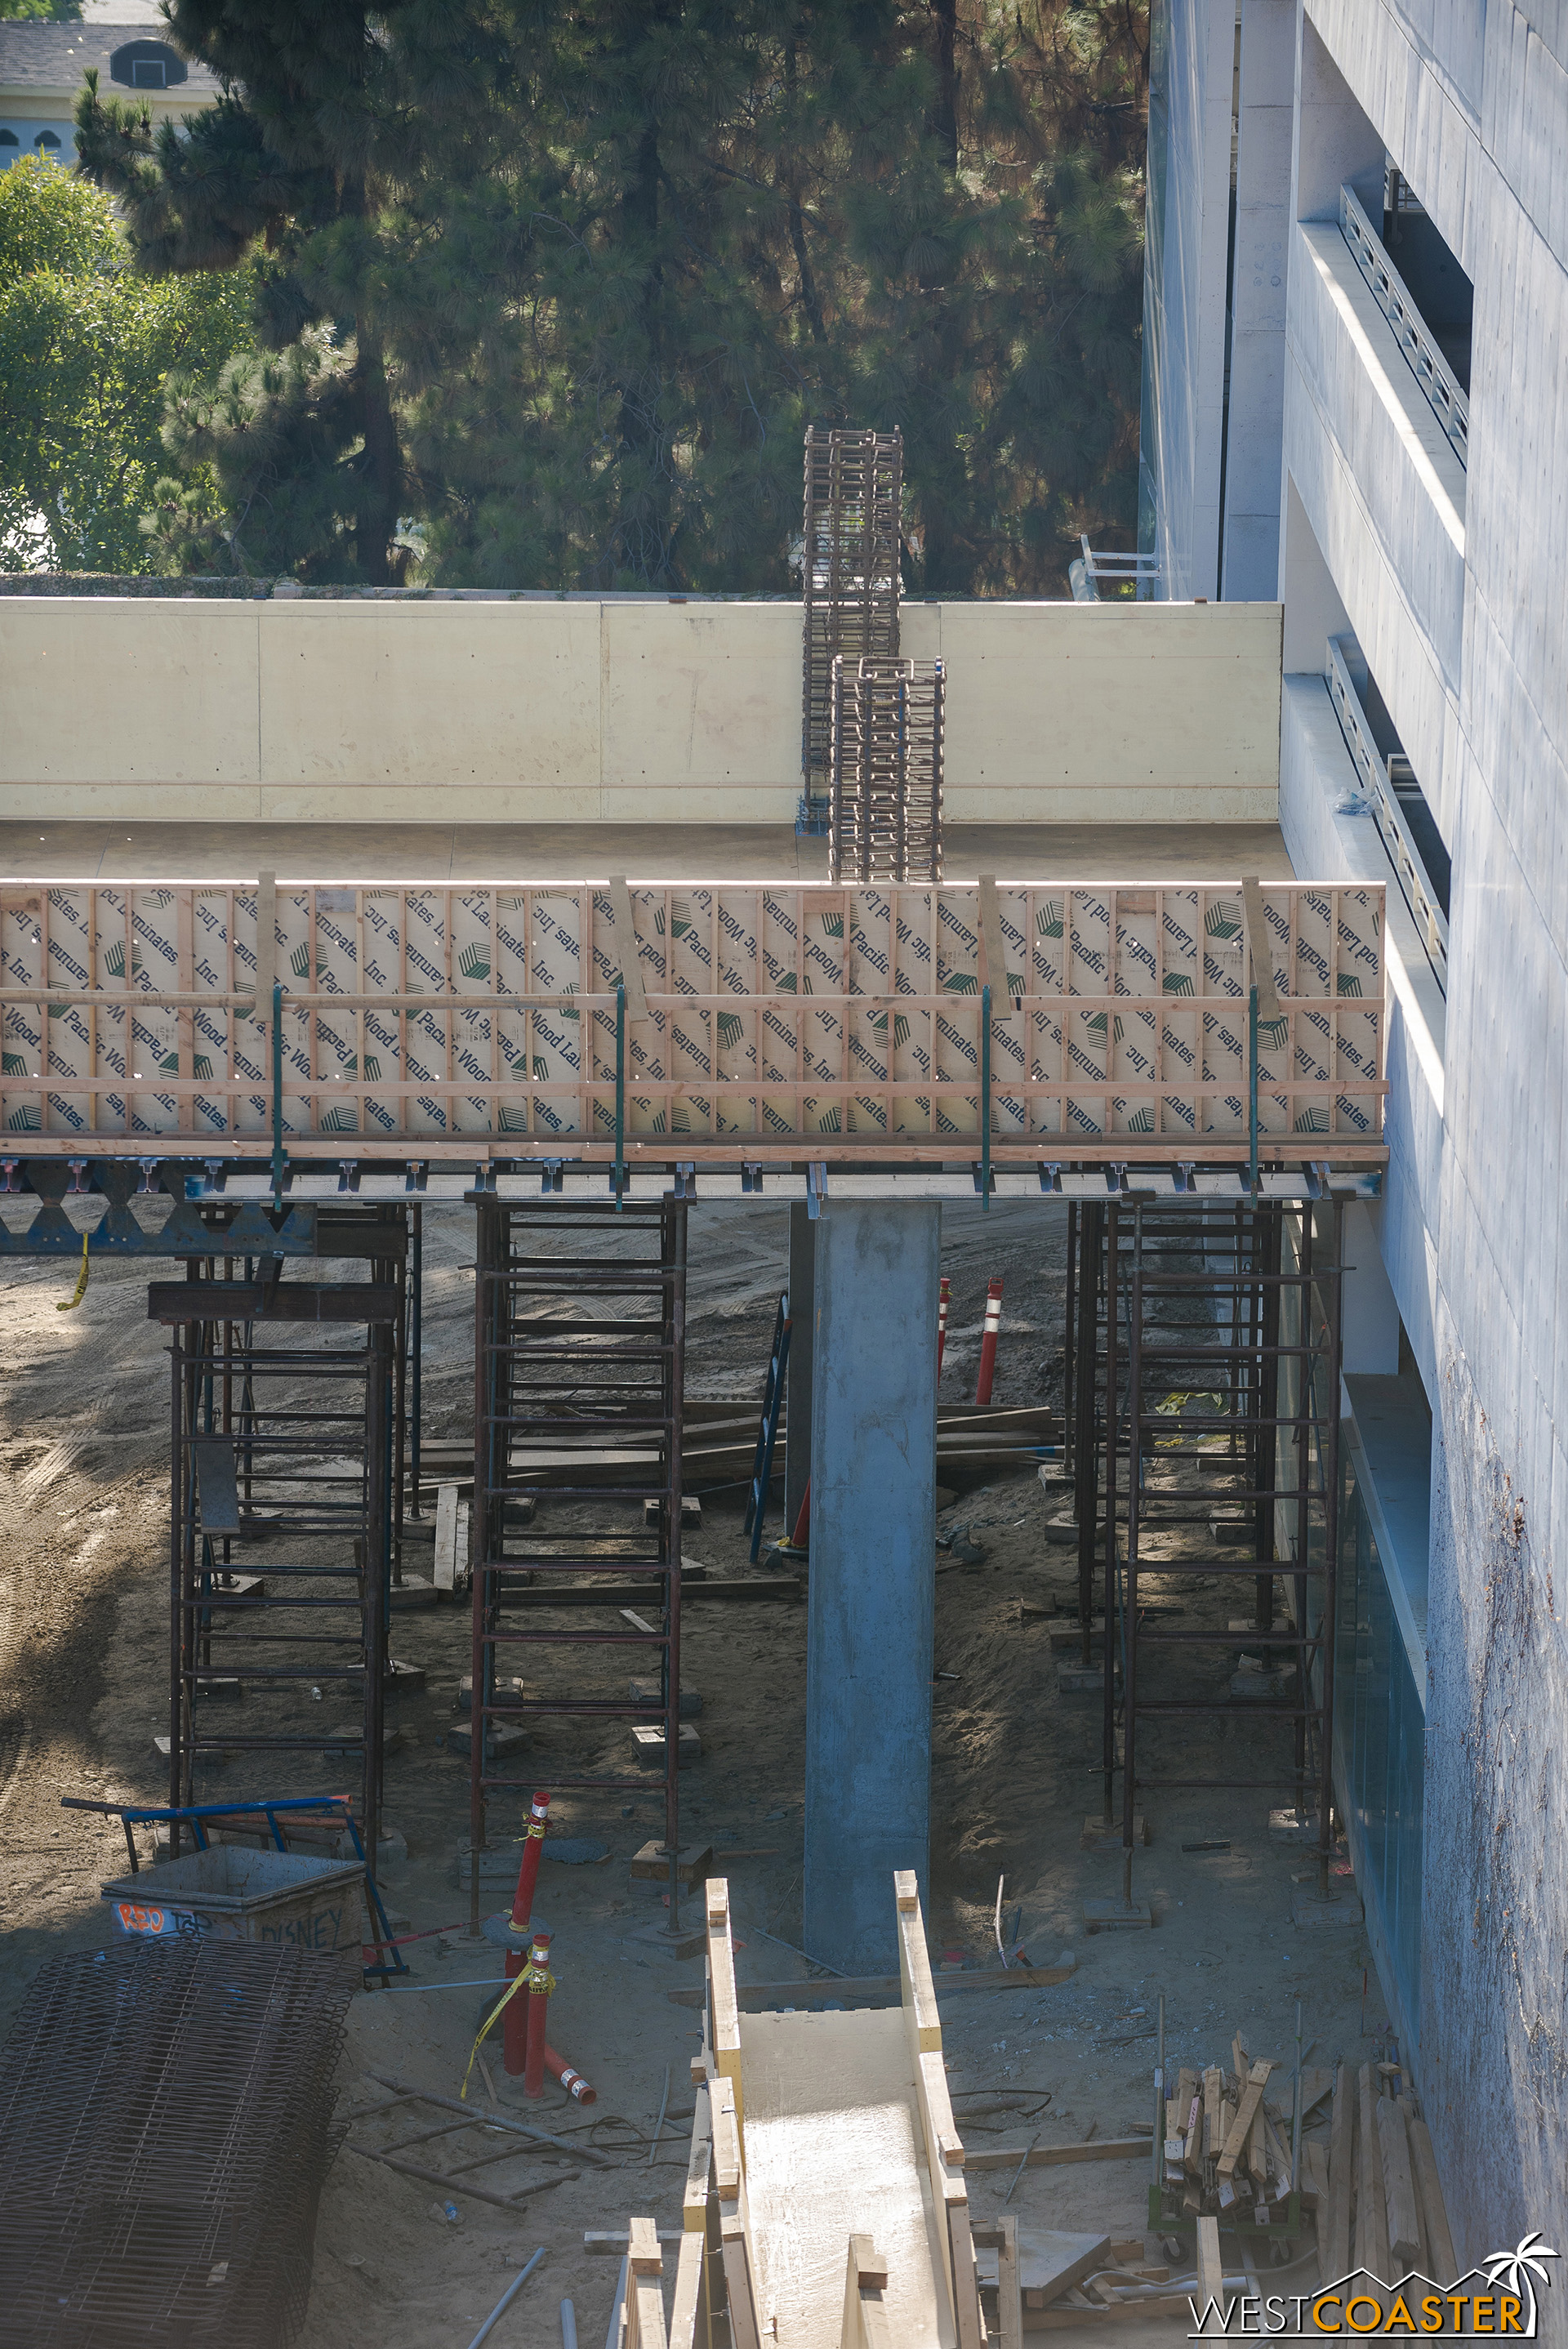 The bridge stops just short of the existing garage to allow for a seismic separation.